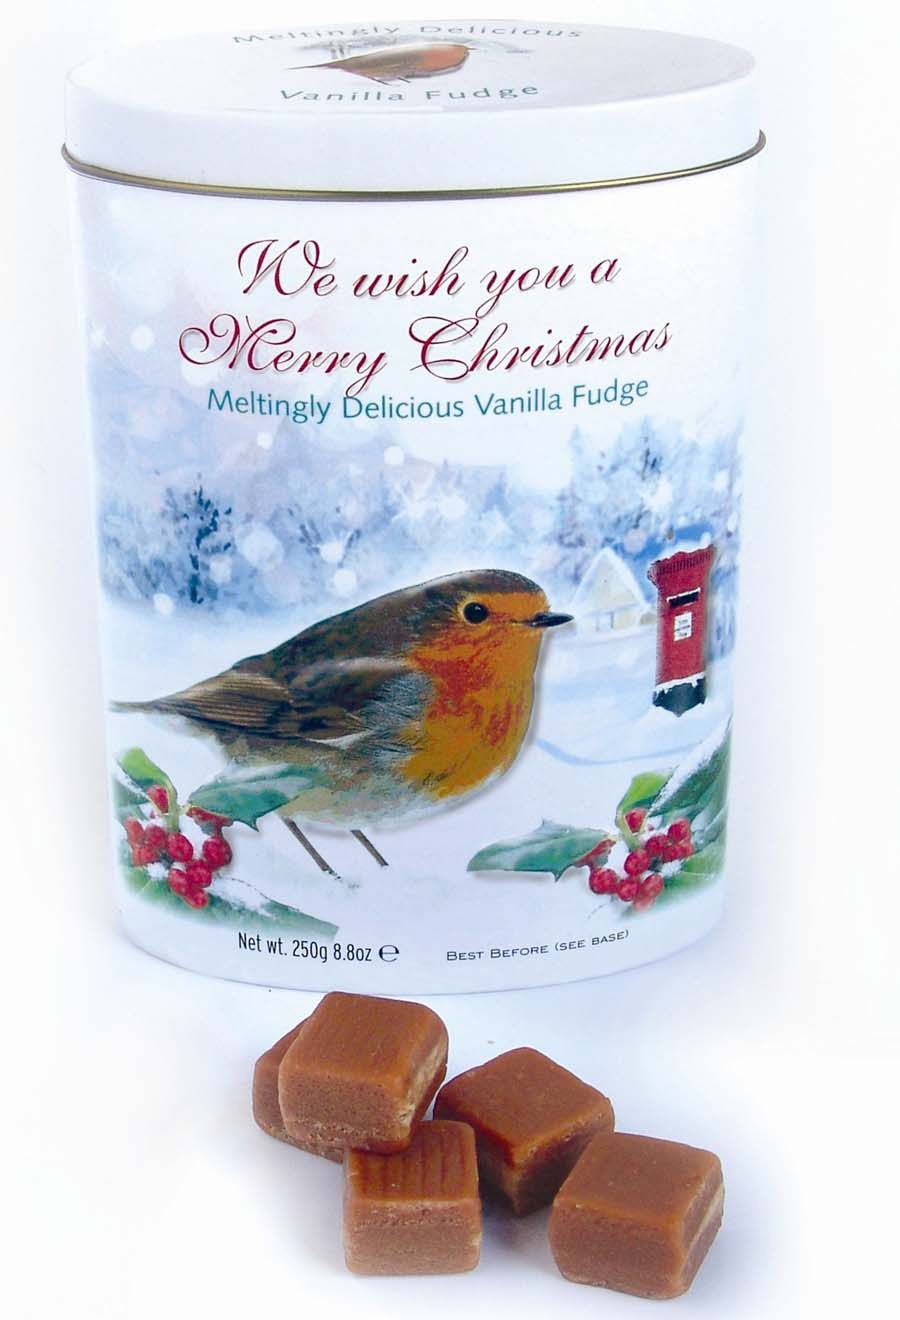 Gardiners' Merry Christmas Robin Tin with Vanilla  Fudge